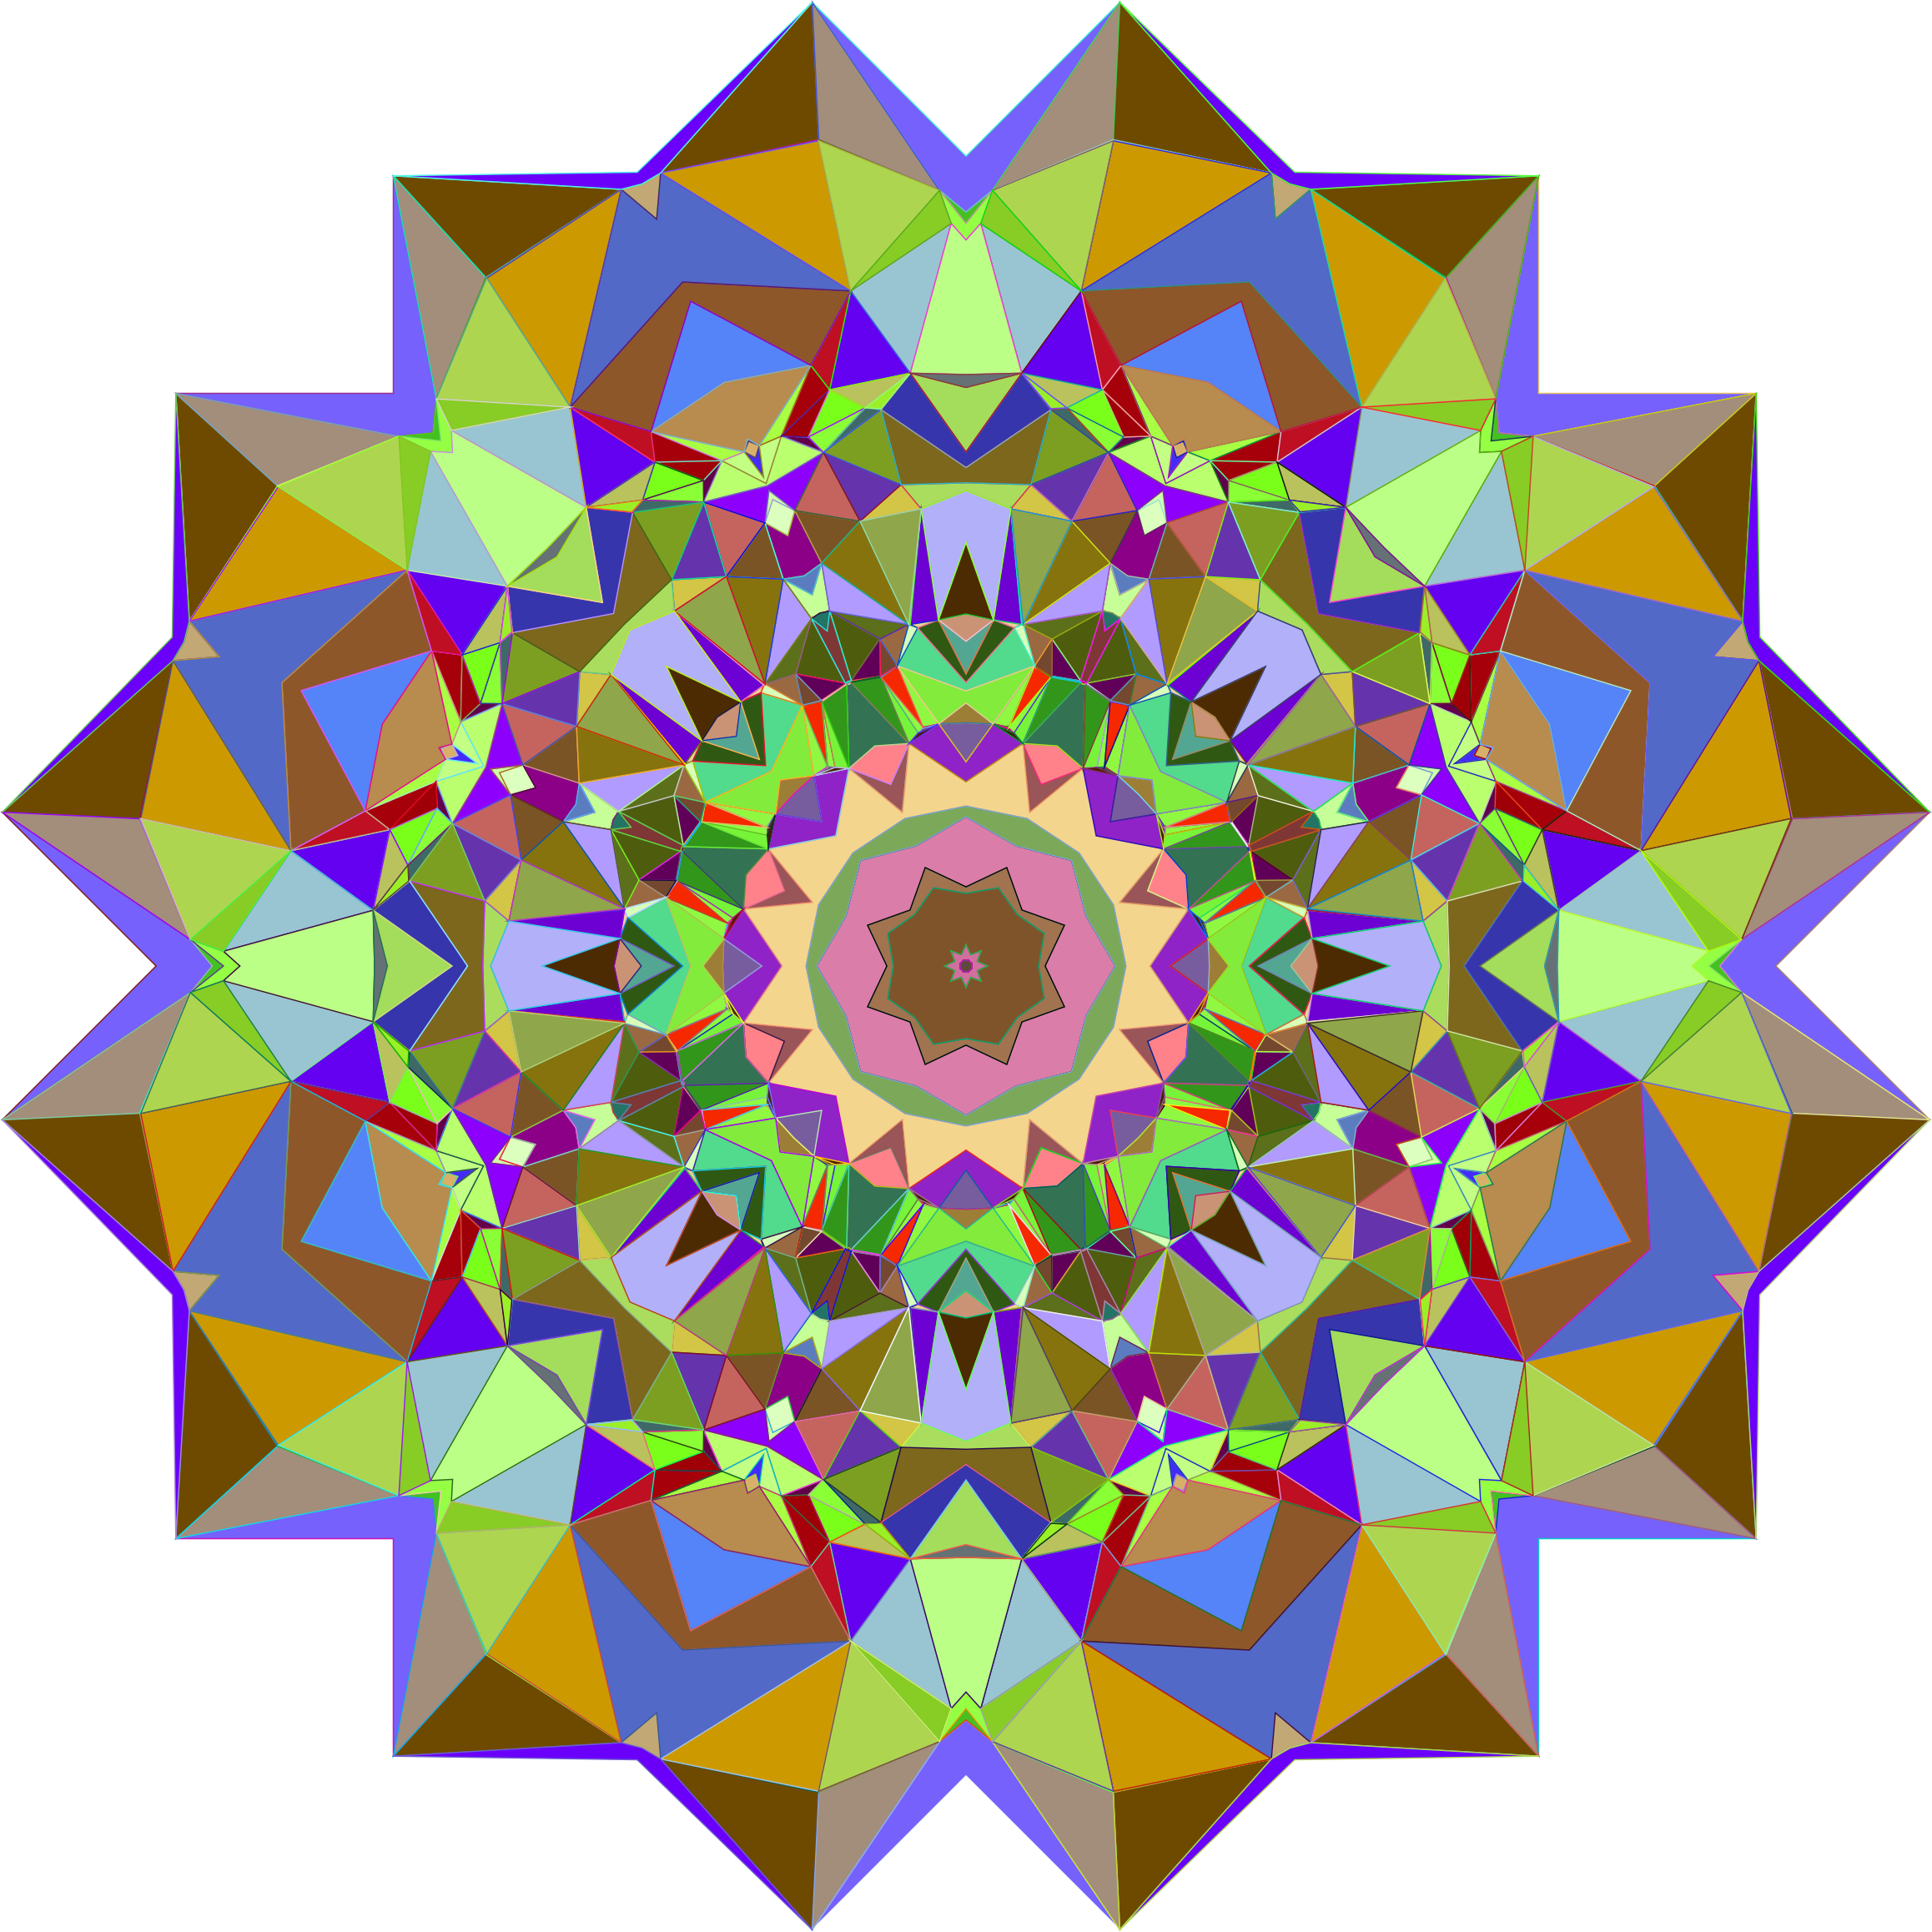 Prismatic Geometric Flower by GDJ